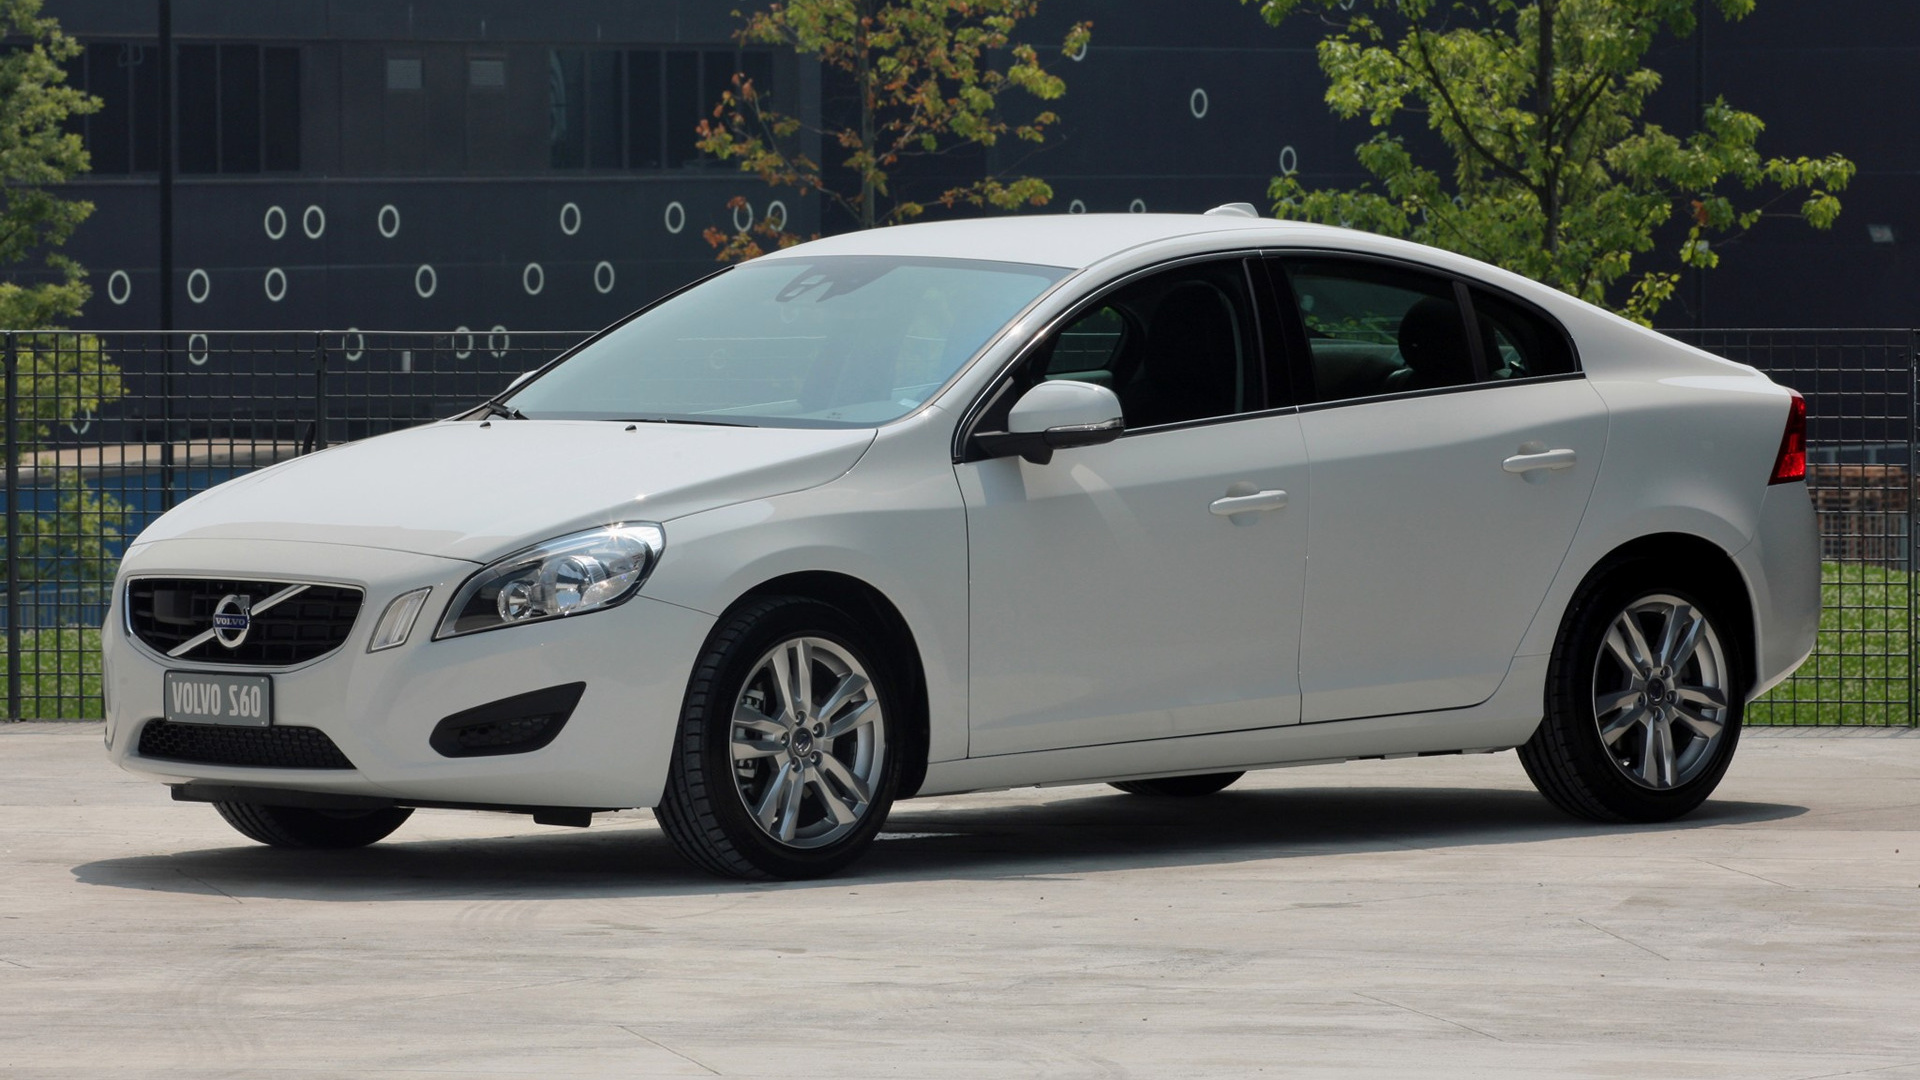 2010 Volvo S60 Wallpapers And Hd Images Car Pixel